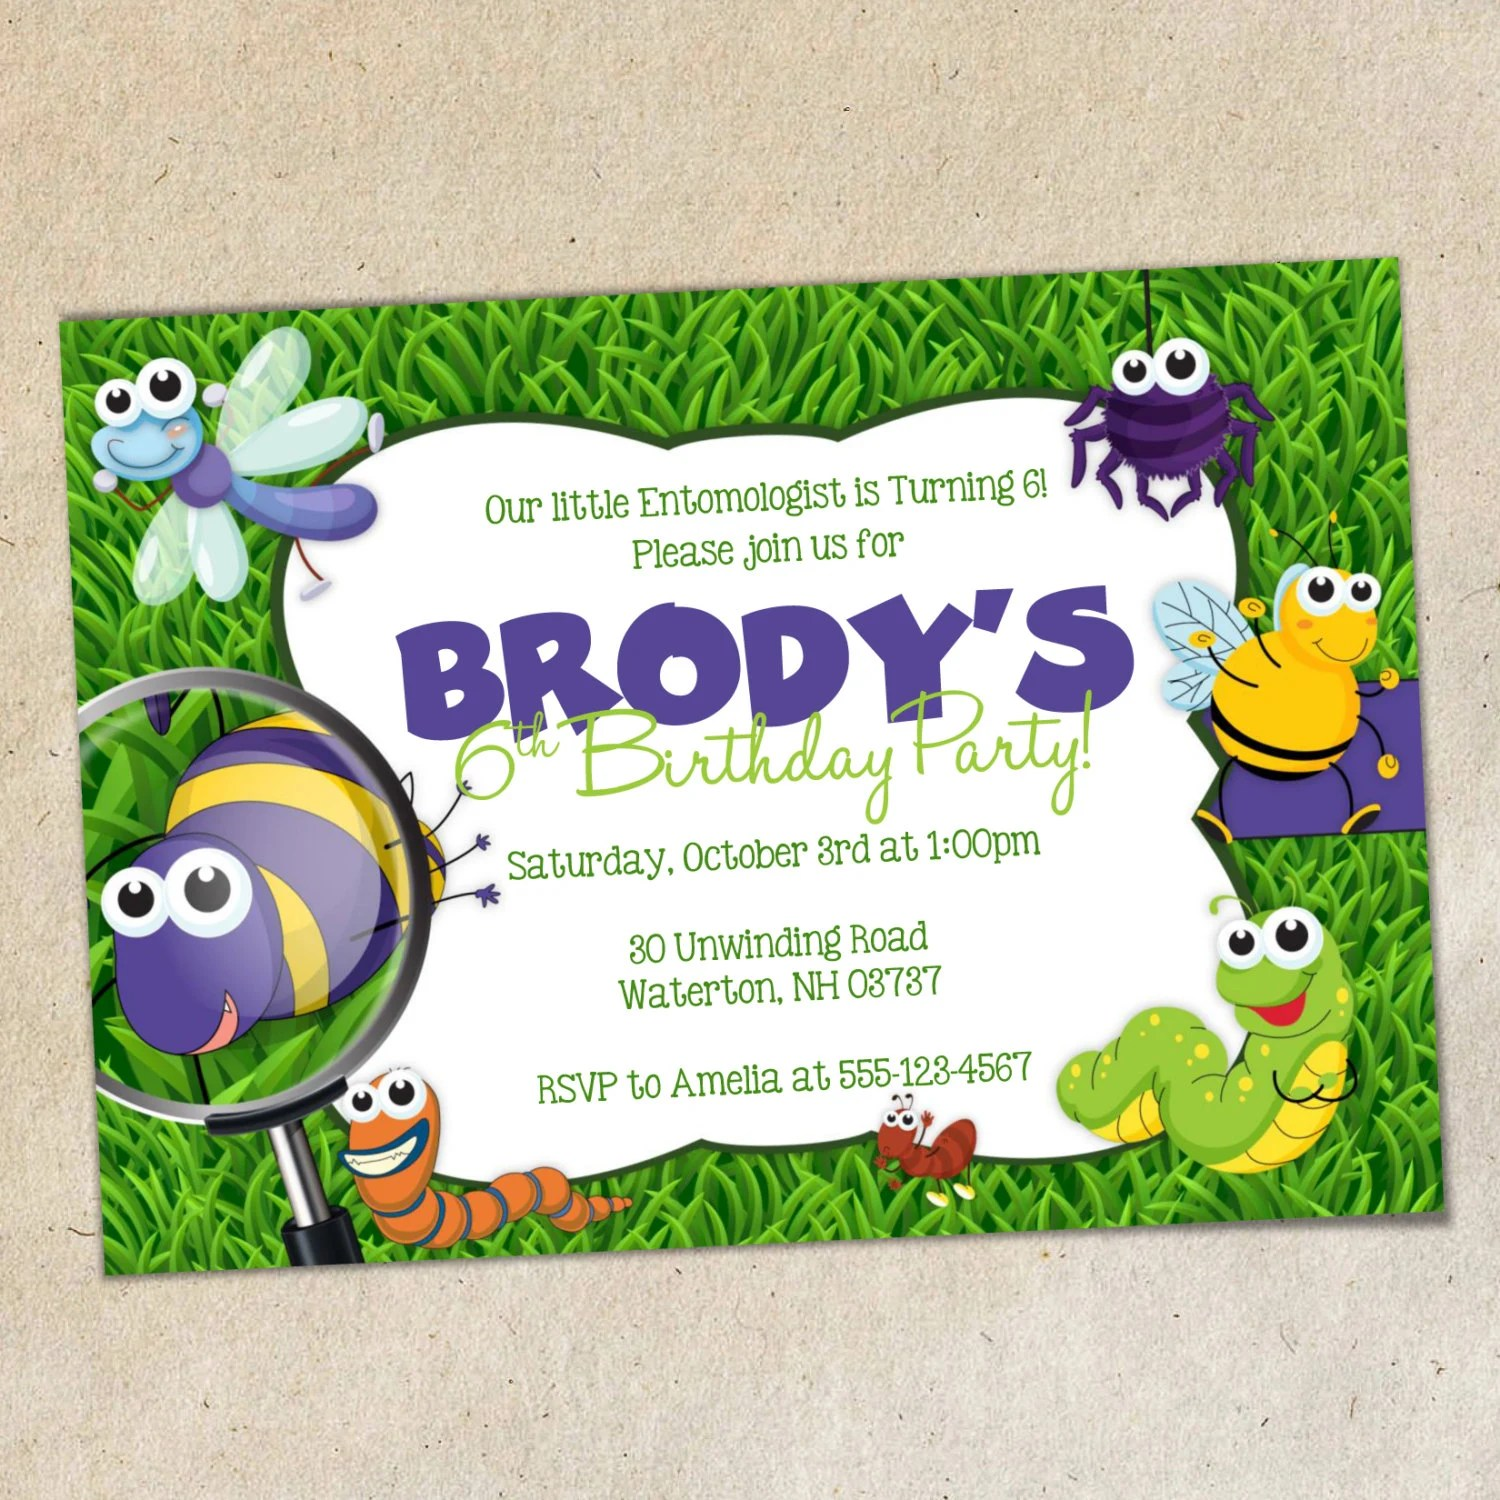 how to make a birthday invitation on word - Jolivibramusic - how to make invitations on word